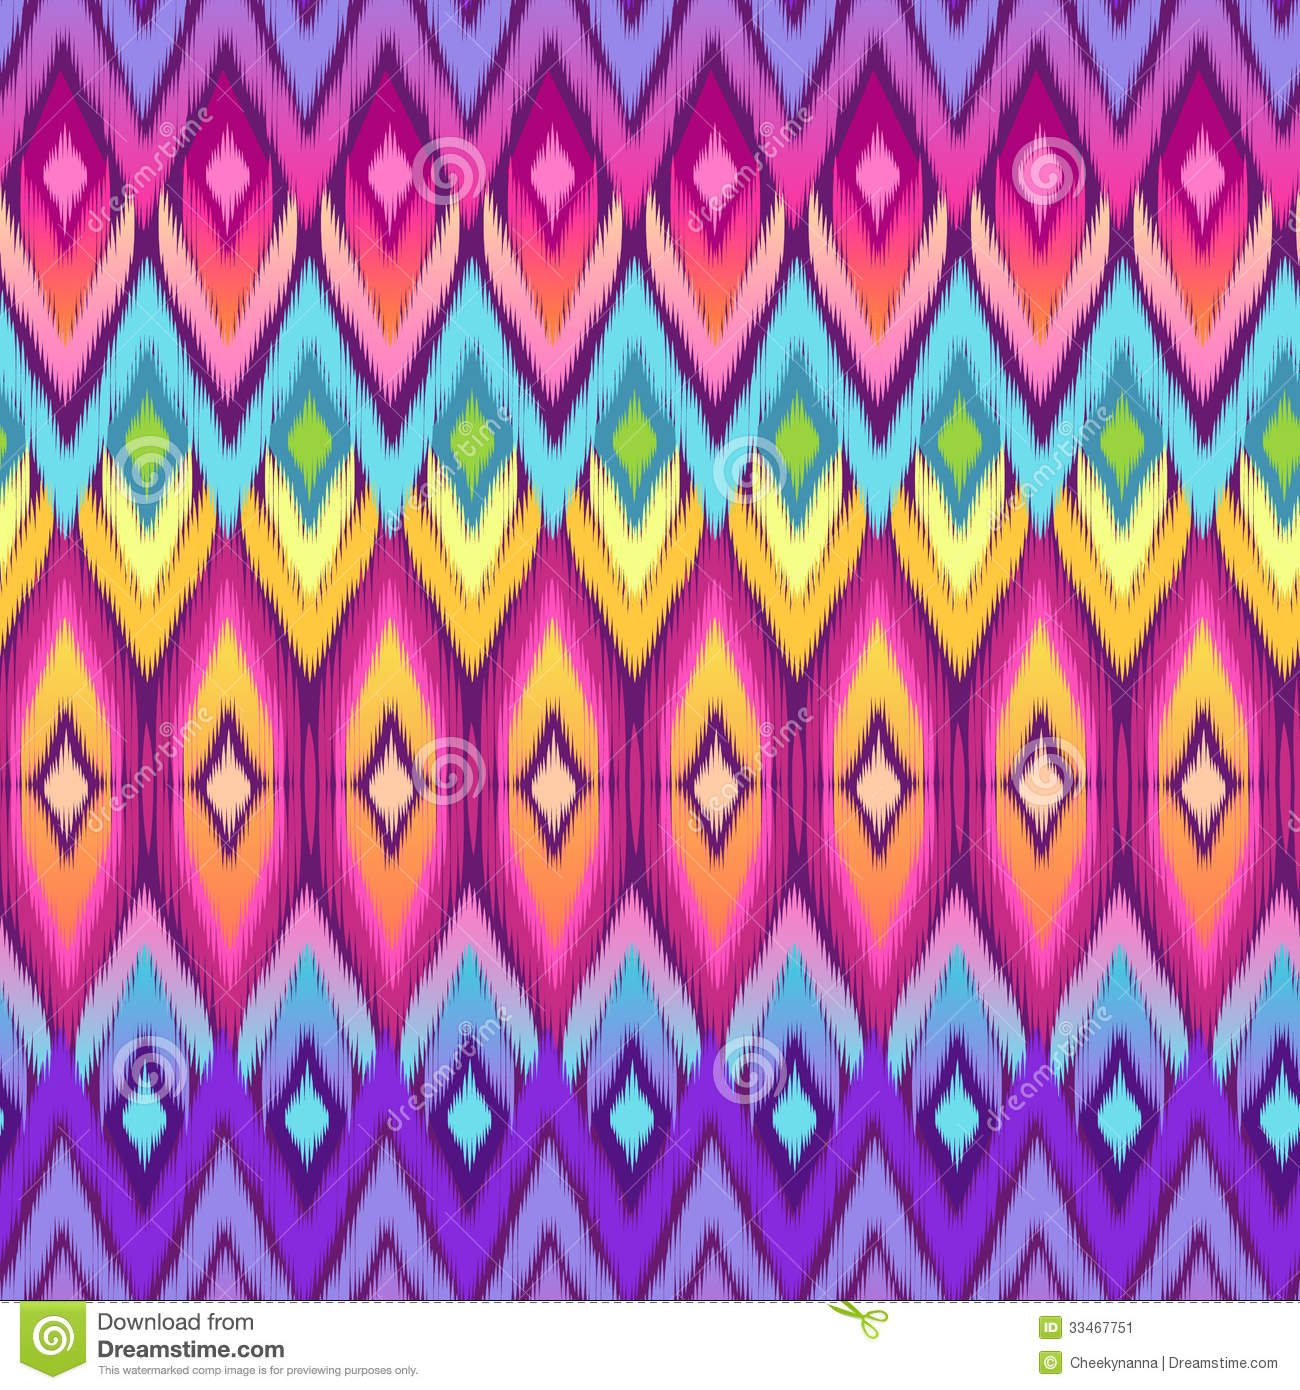 Neon tribal print background pictures